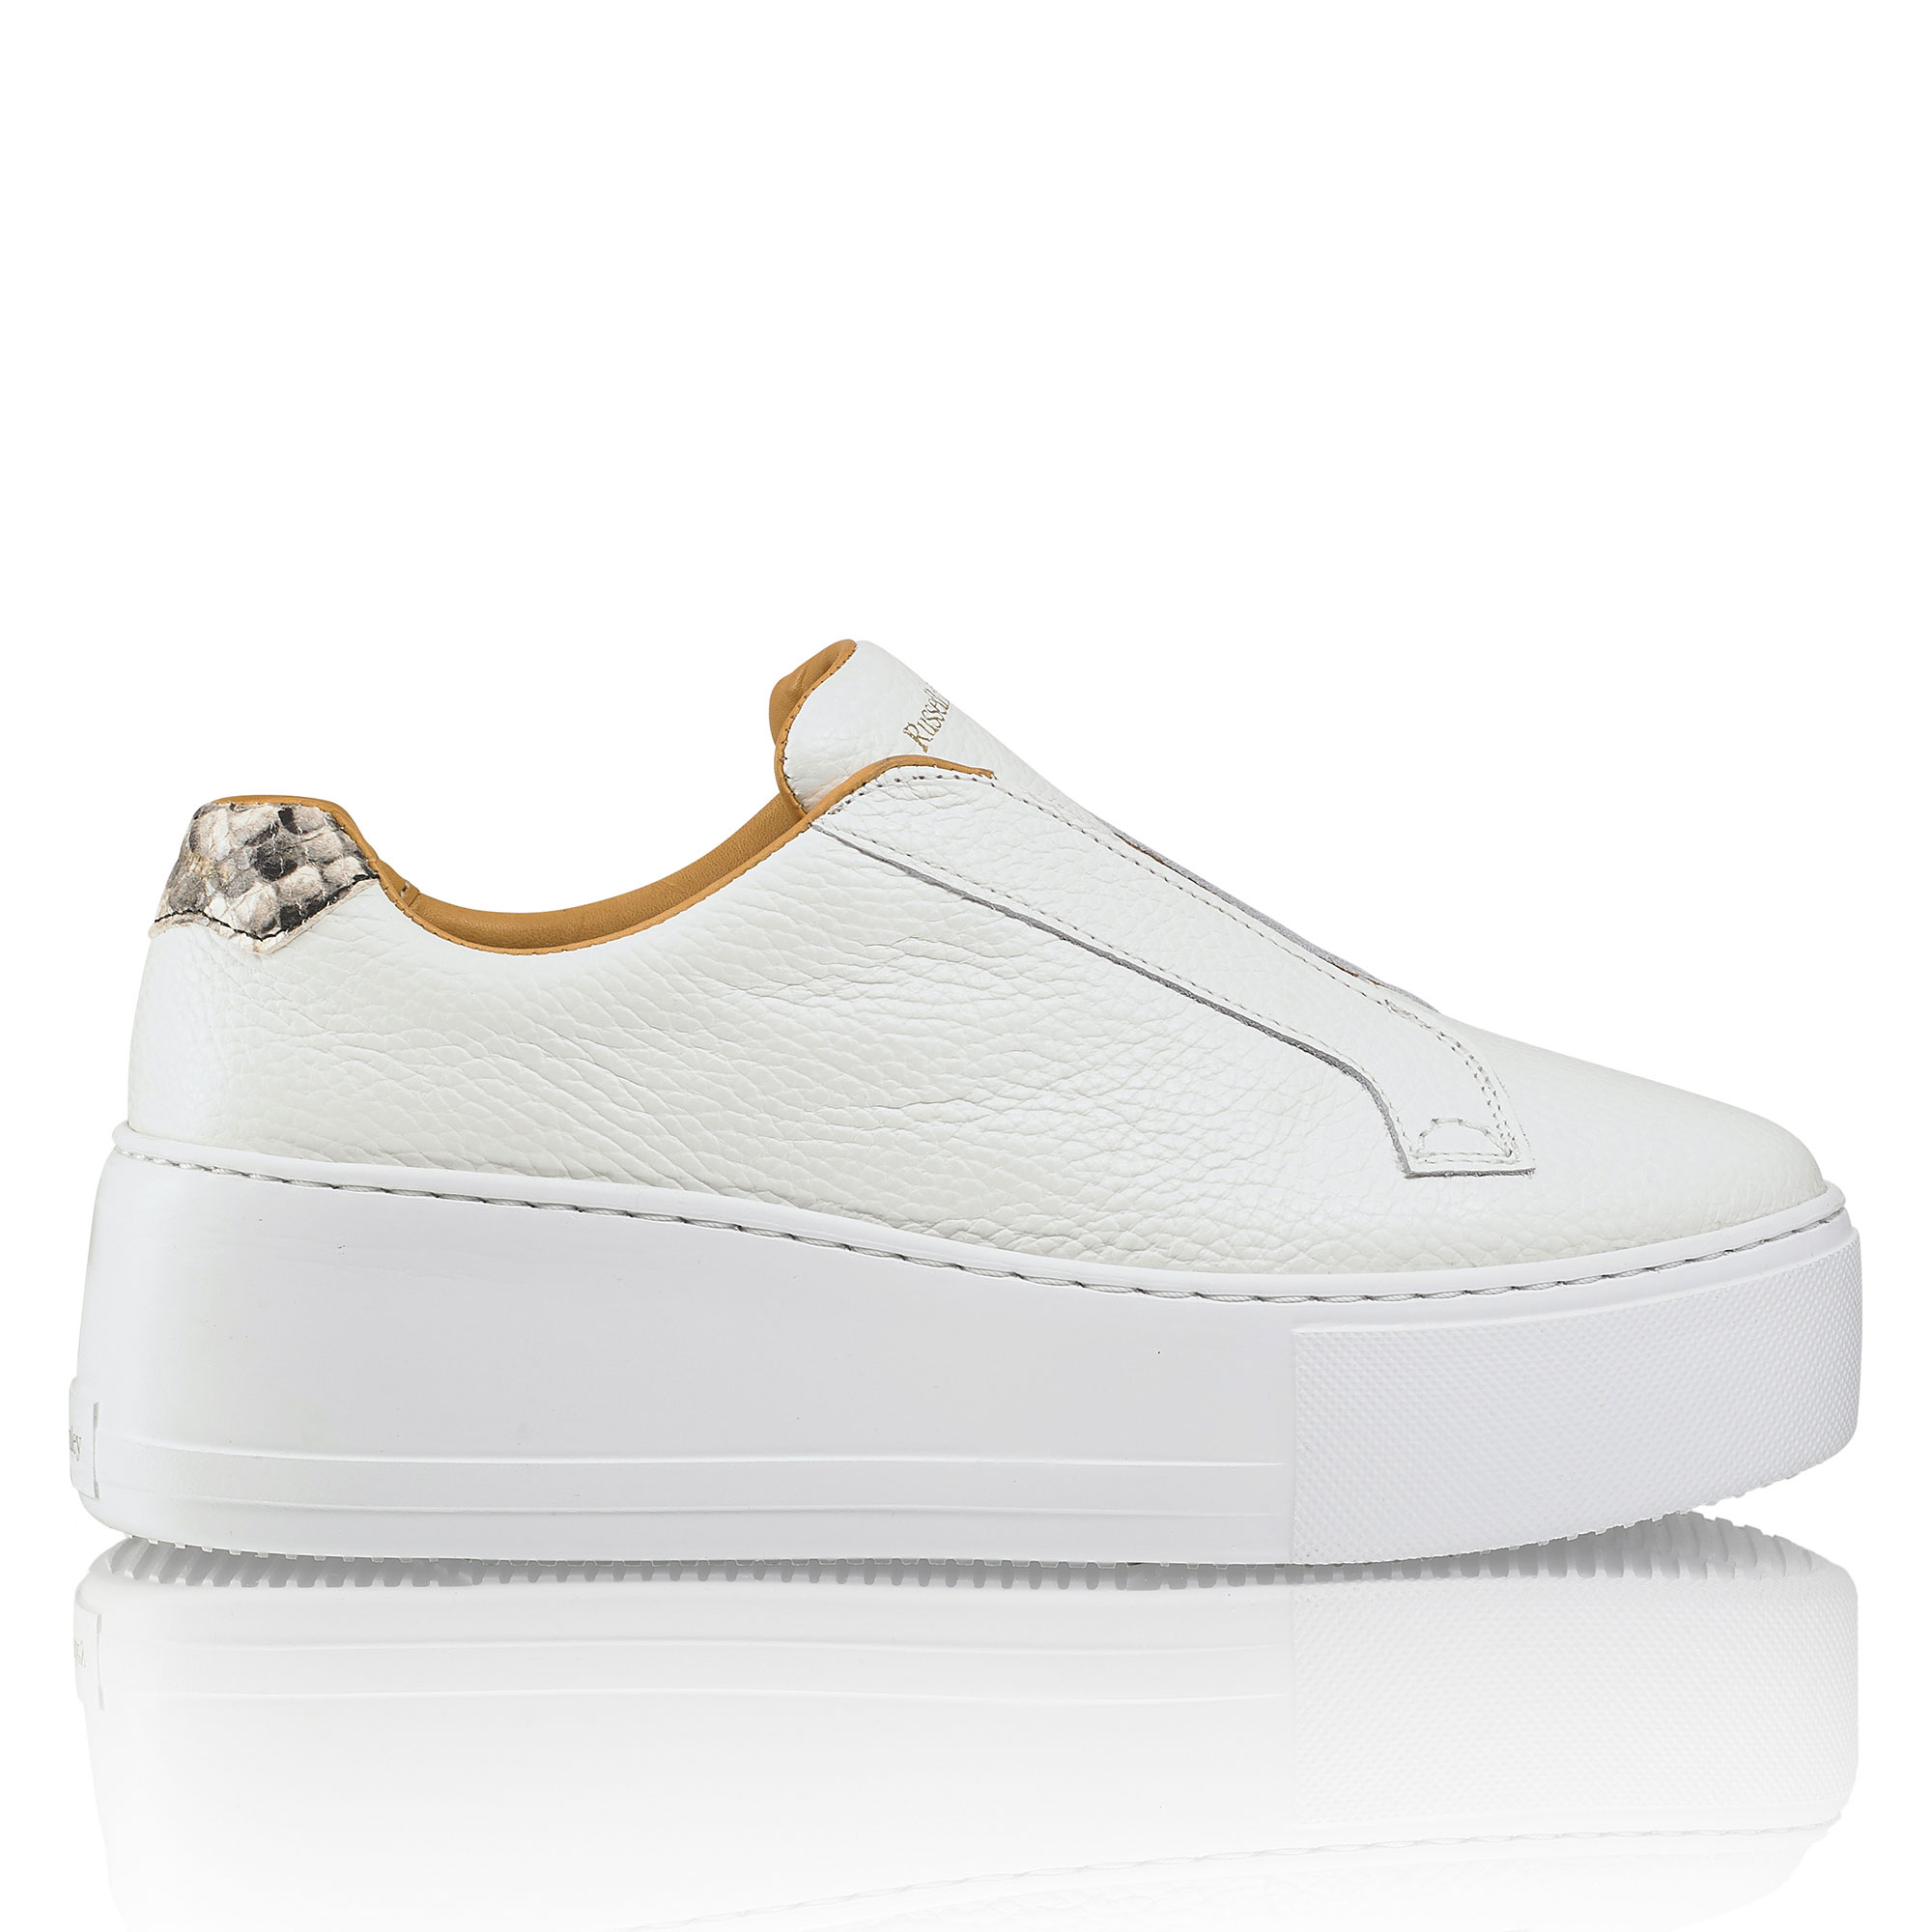 [Image: russell%20and%20bromley%20trainers-528tru.jpg]